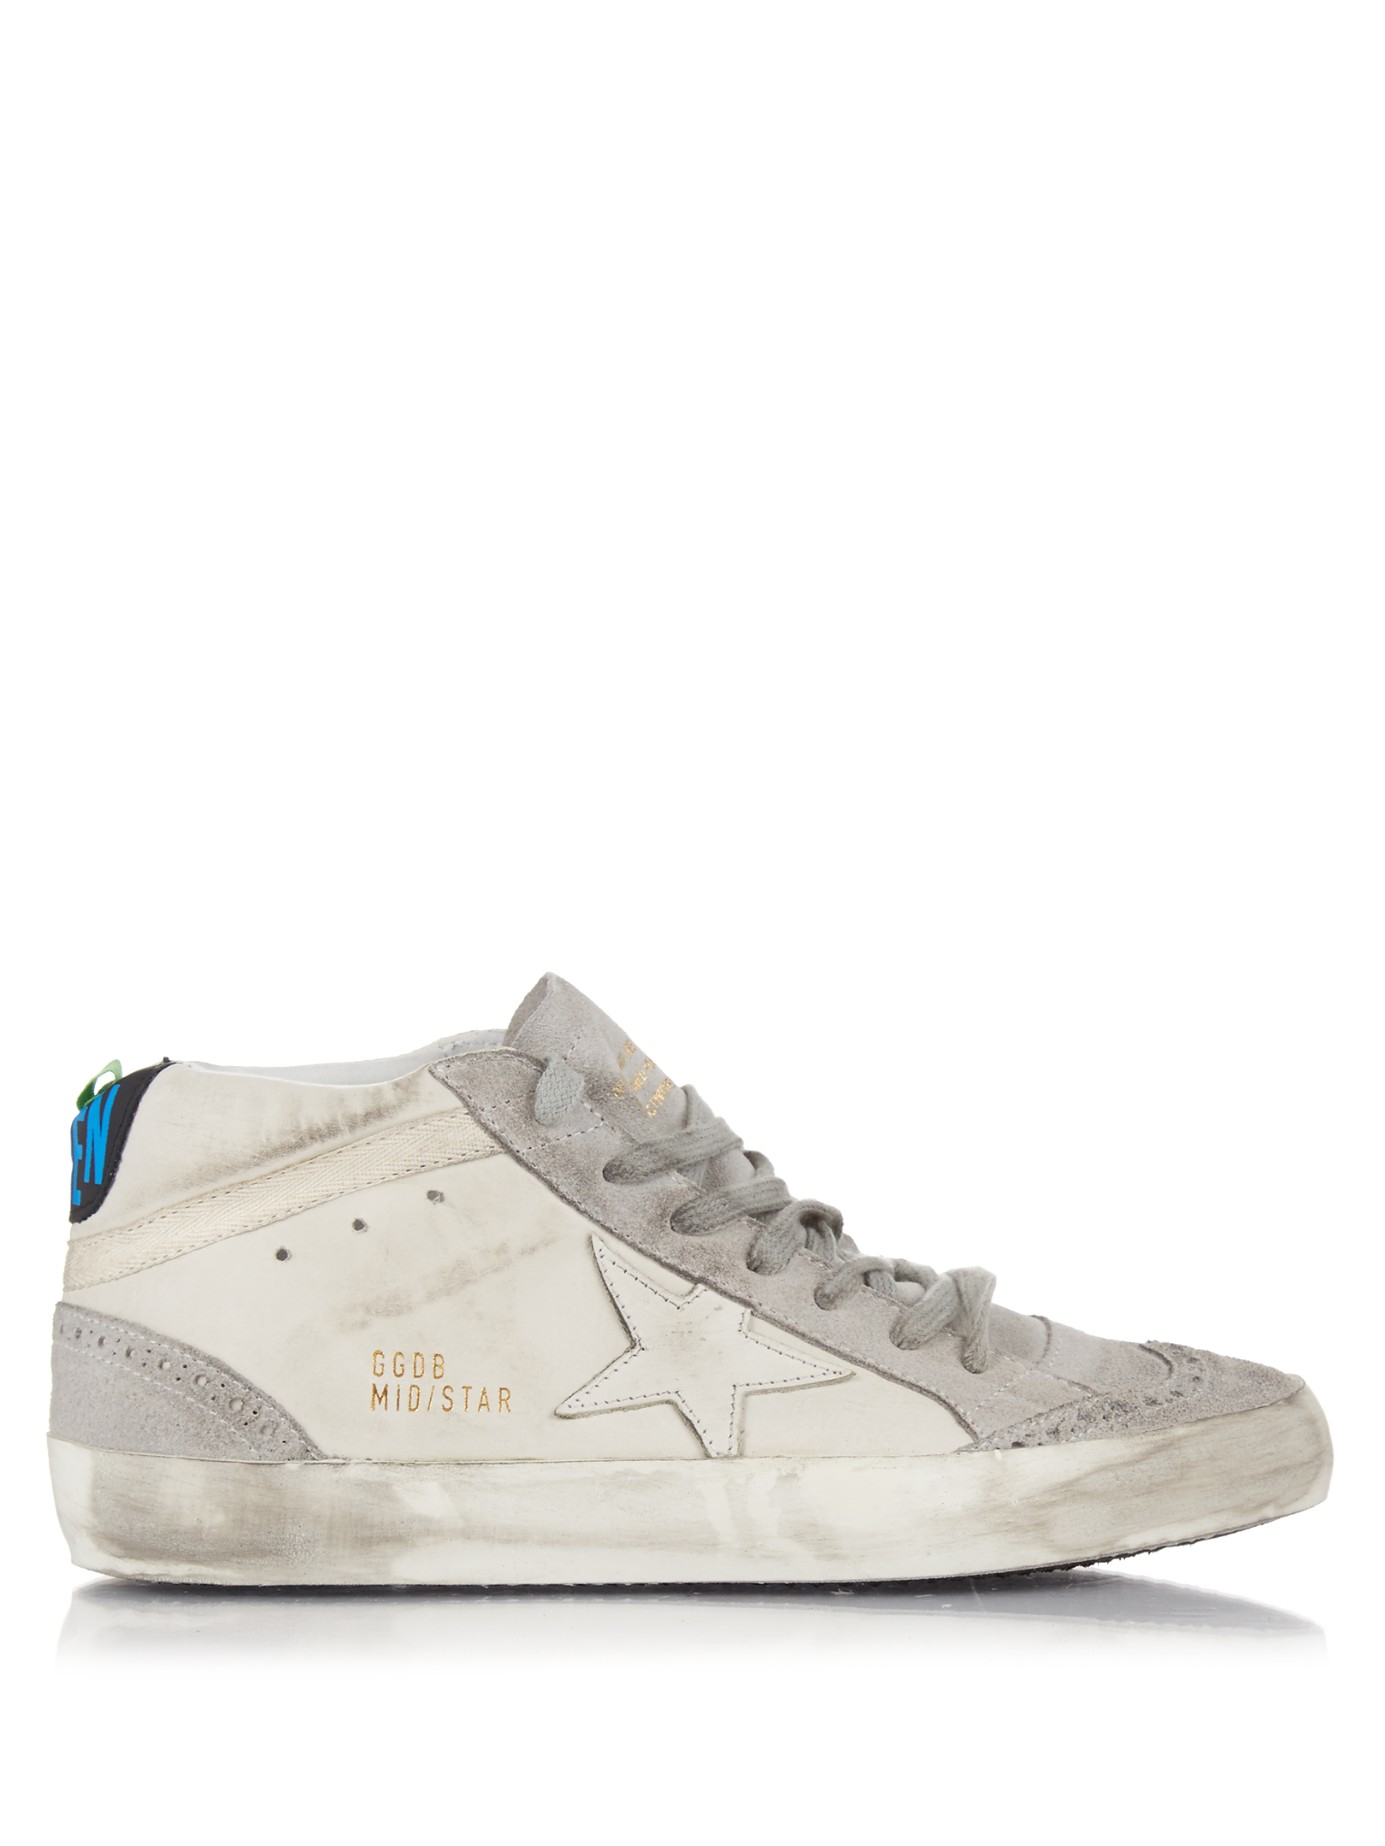 Midstar leather and suede trainers Golden Goose qT9RG1c